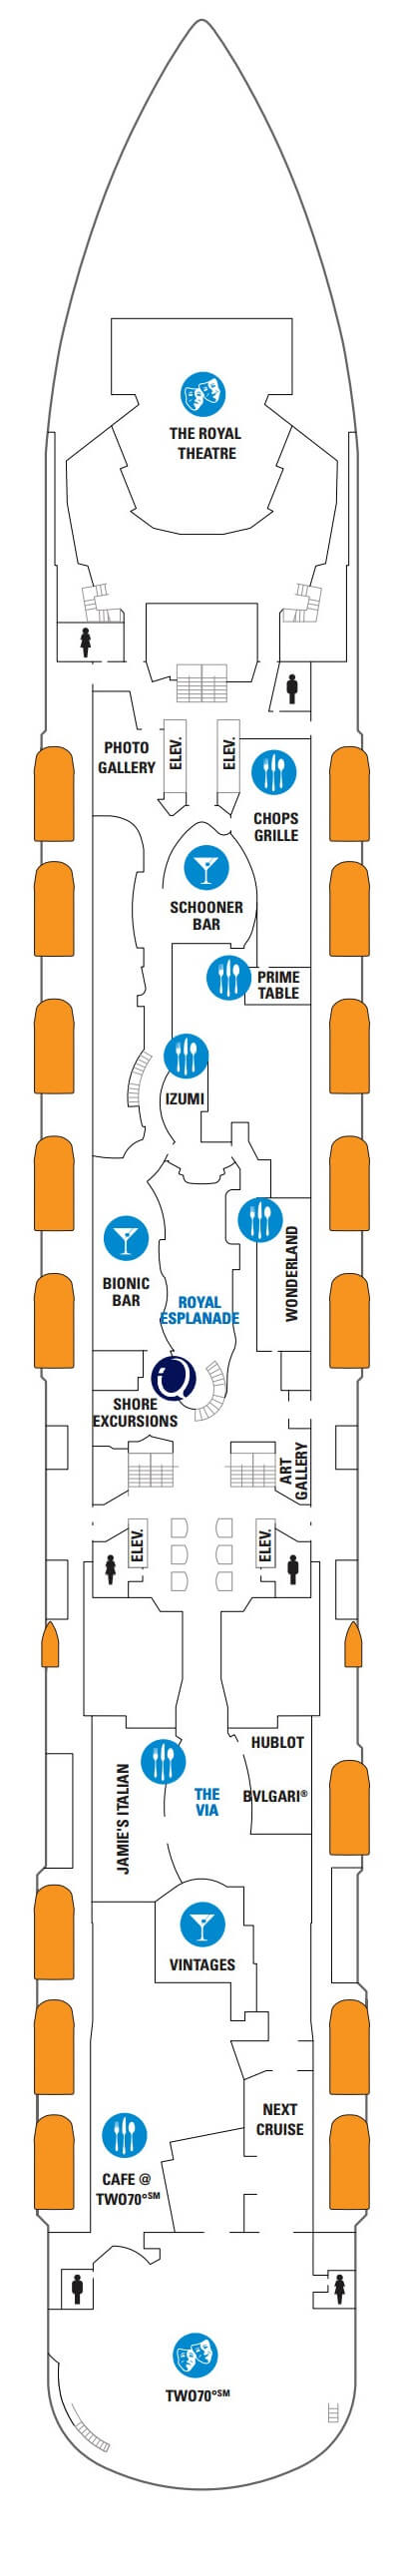 Anthem Of The Seas Deck 5 layout